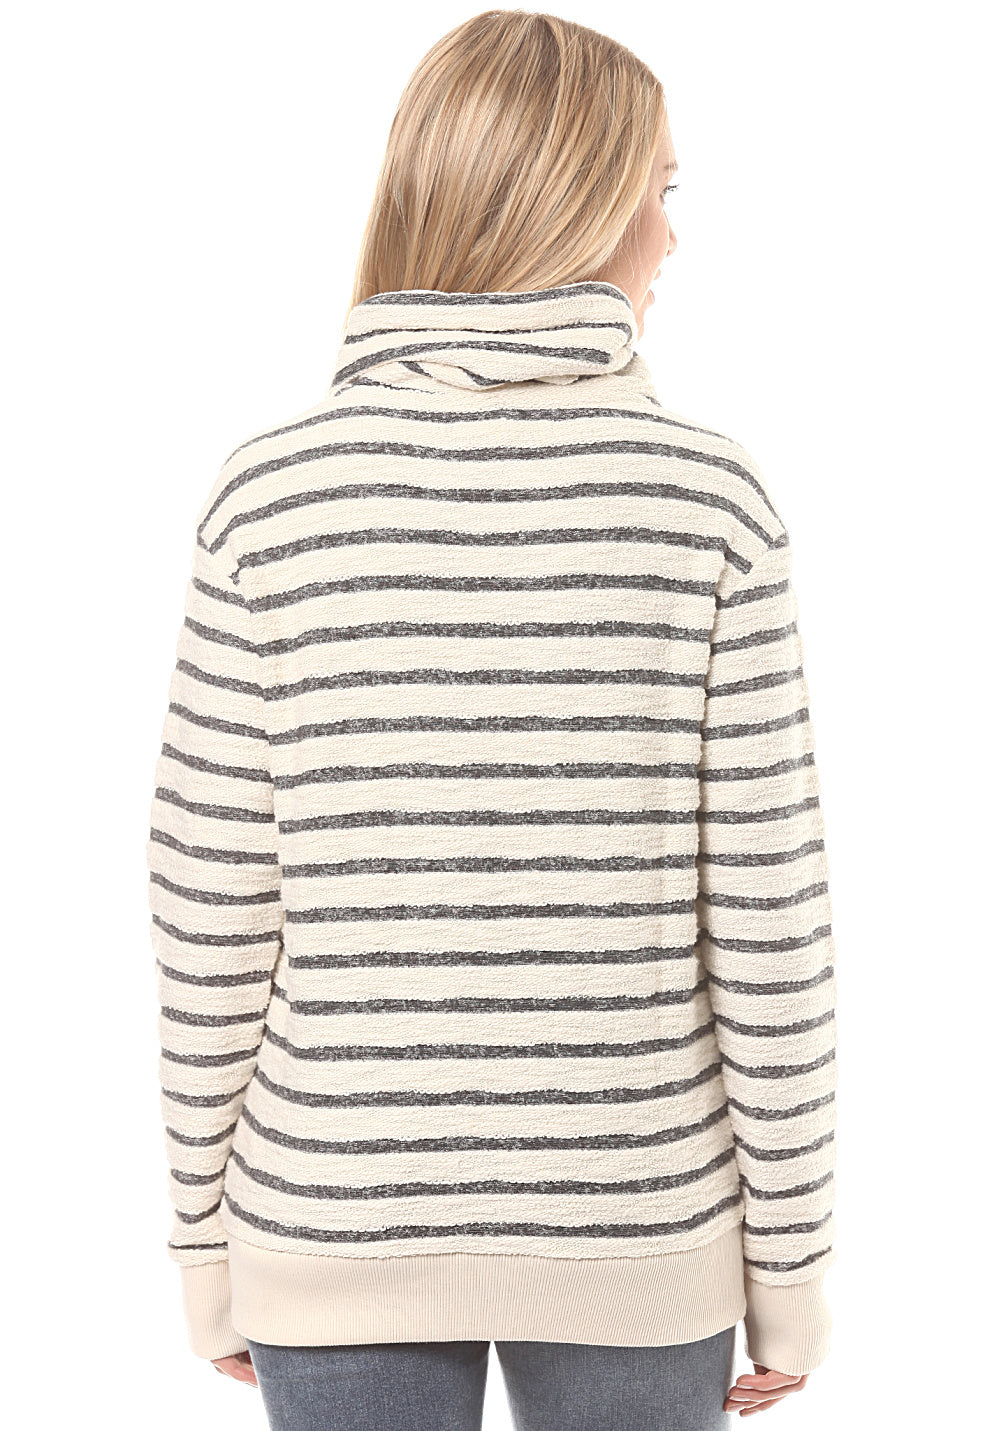 Roxy Lunar Patrol Zip-Up Sweatshirt